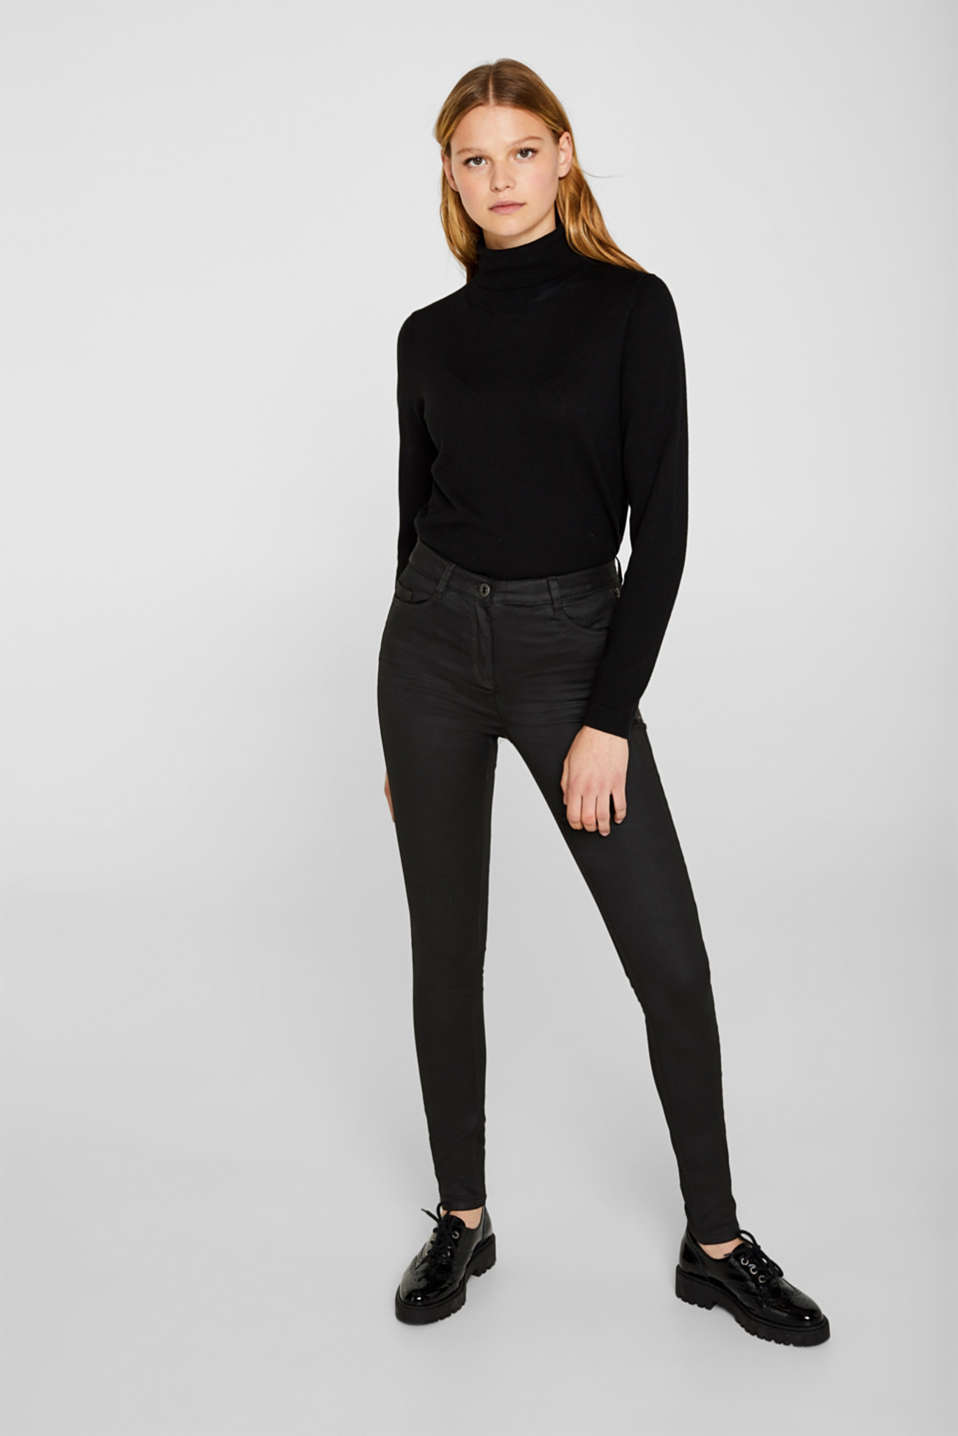 edc - Pantalon stretch enduit, orné d'un zip